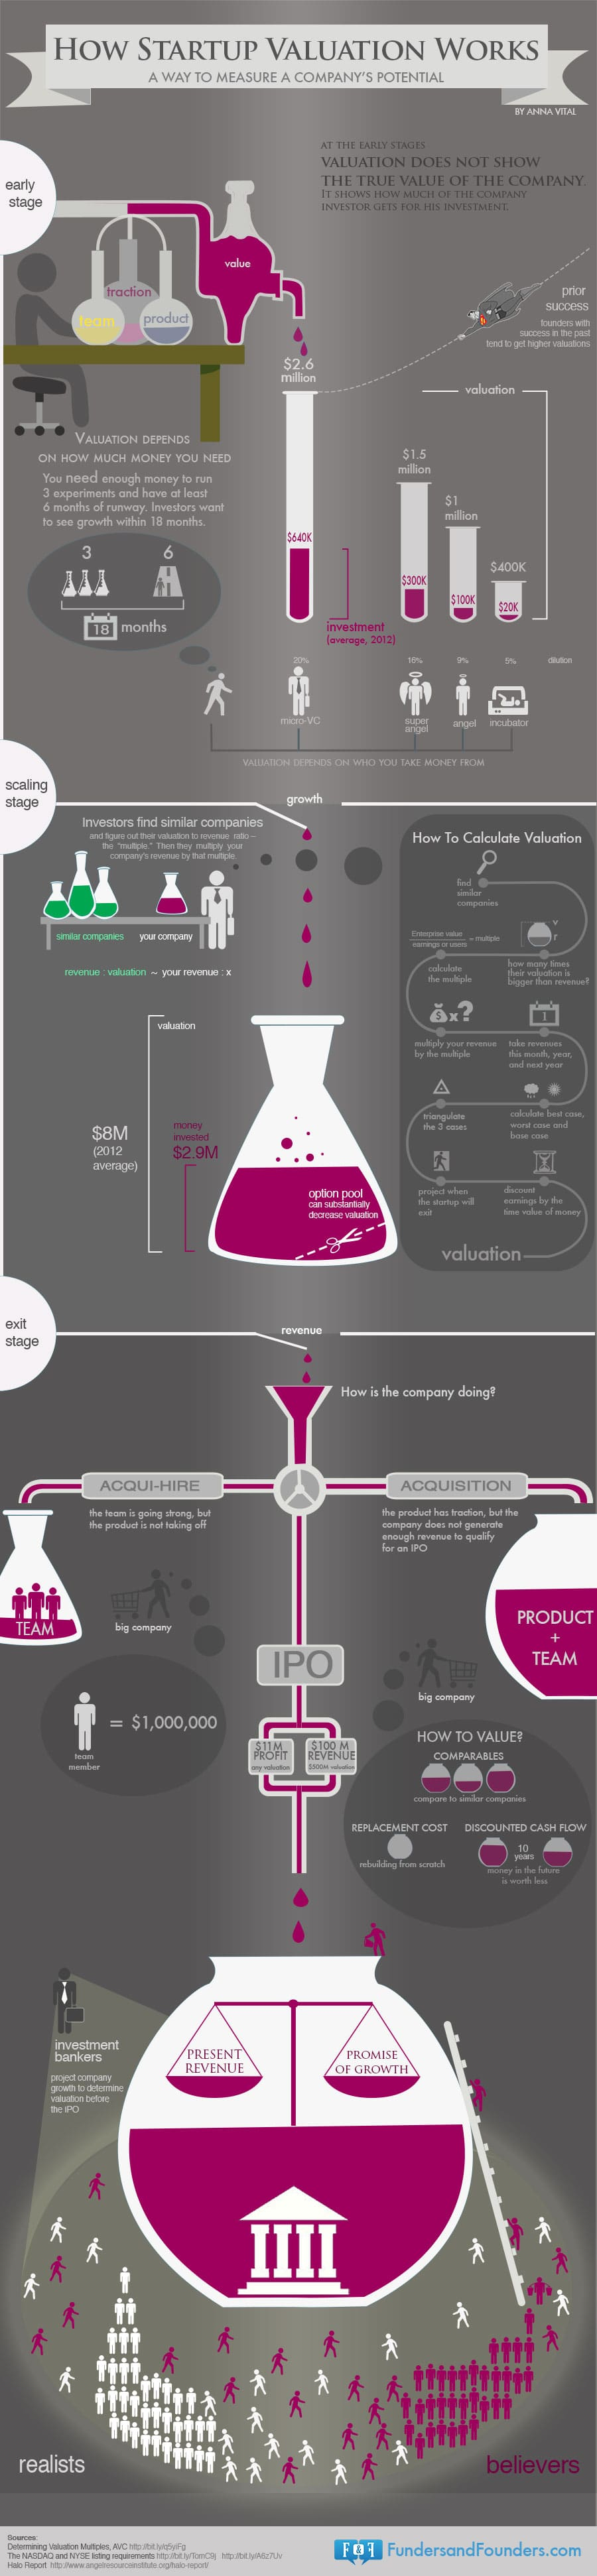 How To Determine The Valuation Of A Startup Company [Infographic]